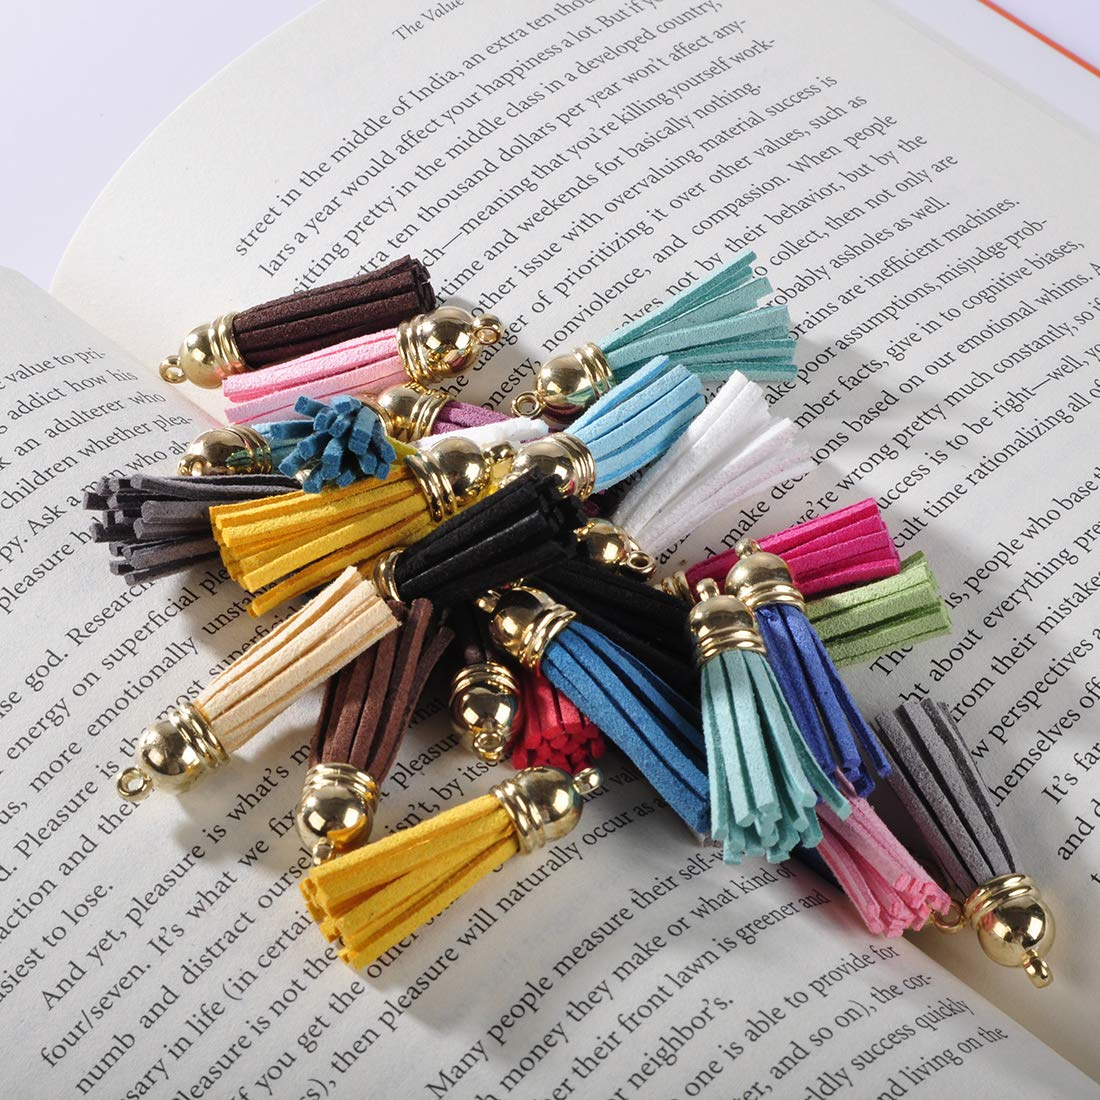 Ciaoed 60 Pieces 40mm Leather Tassel Pendants Faux Suede Tassel with Caps and 20 Pieces Key Ring DIY Accessories with 20 Colors